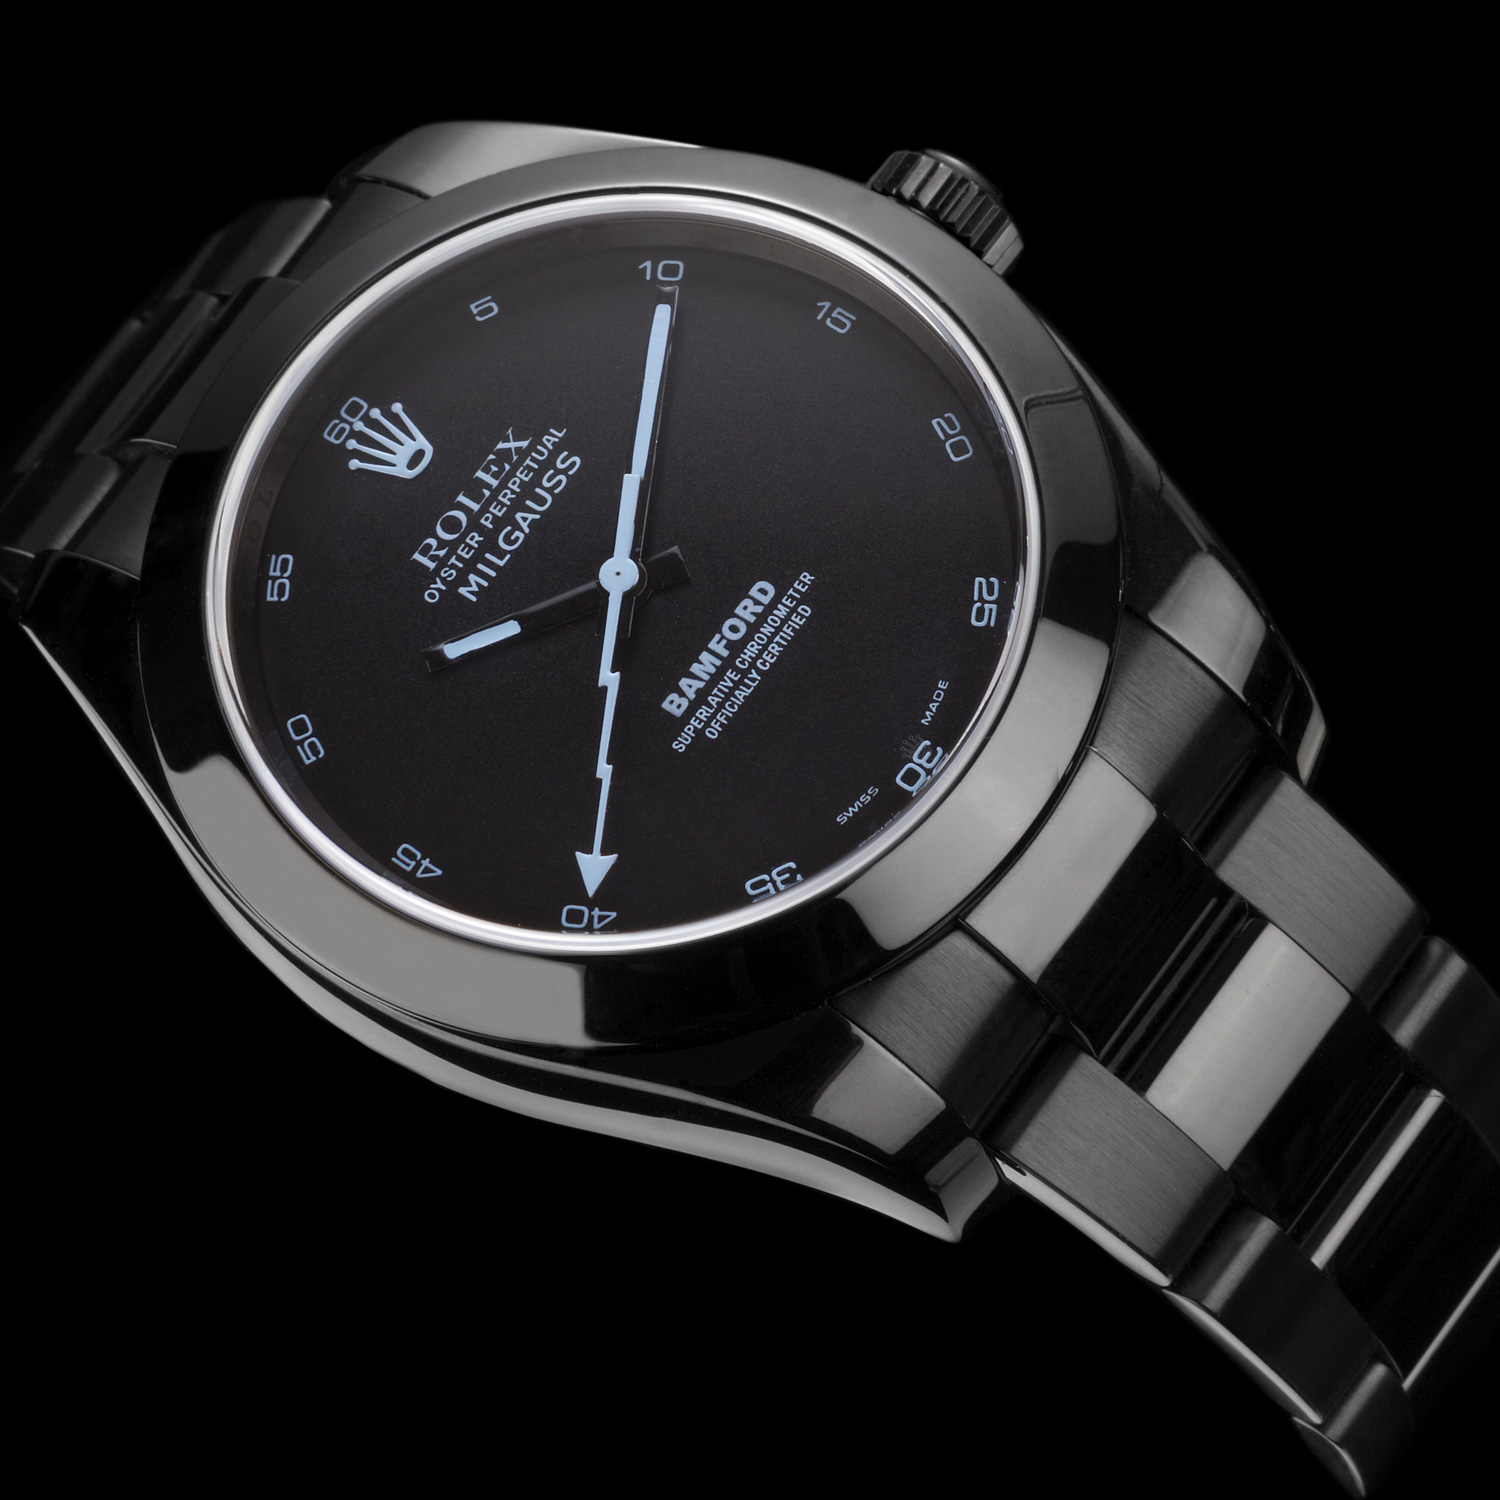 Rolex Milgauss Bamford Replica Watches